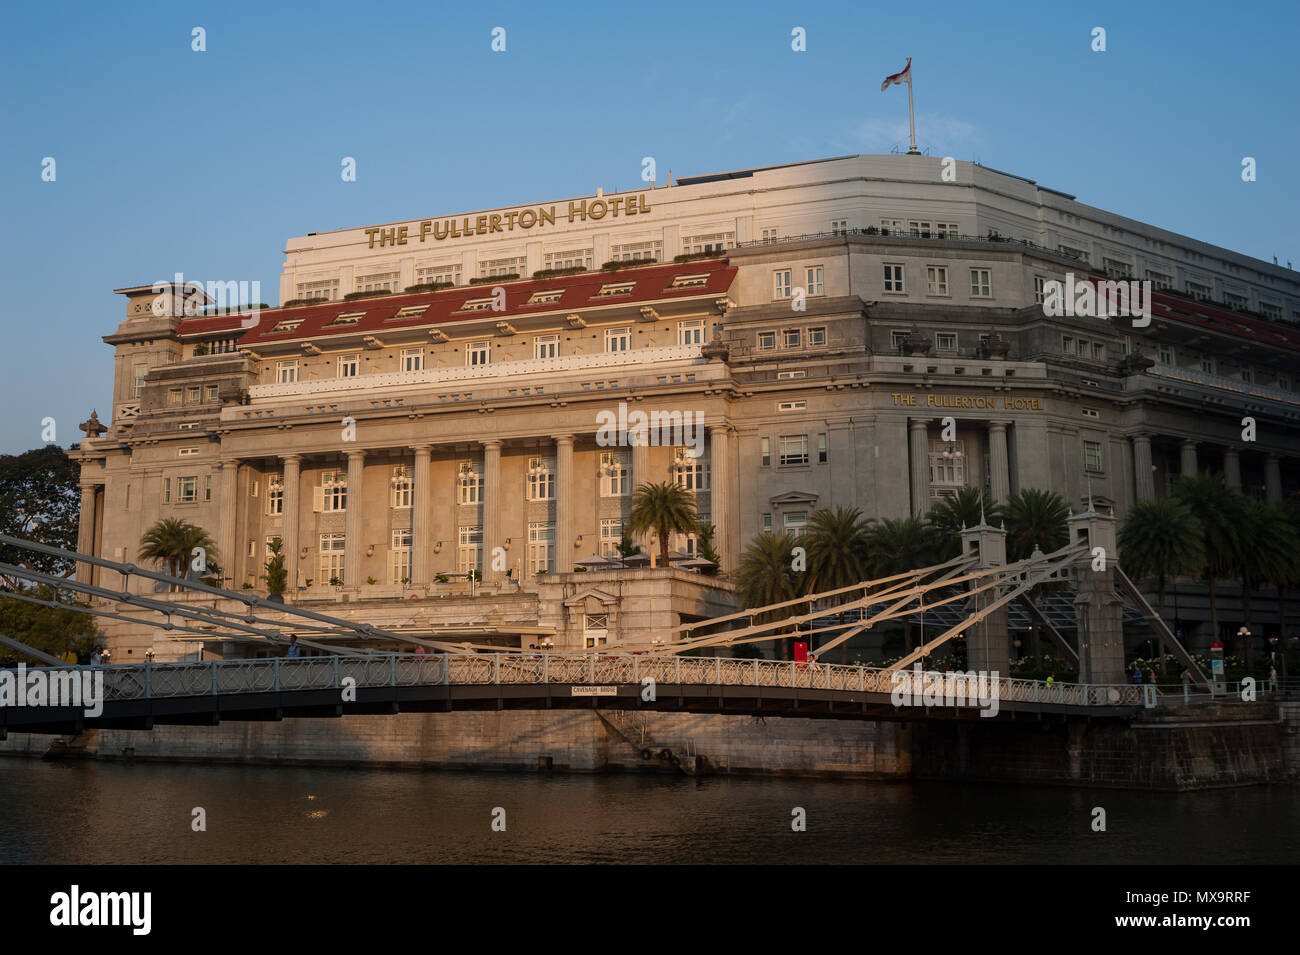 15.03.2018, Singapore, Republic of Singapore, Asia - A view of The Fullerton Hotel along the Singapore River in the lion city's downtown core. Stock Photo